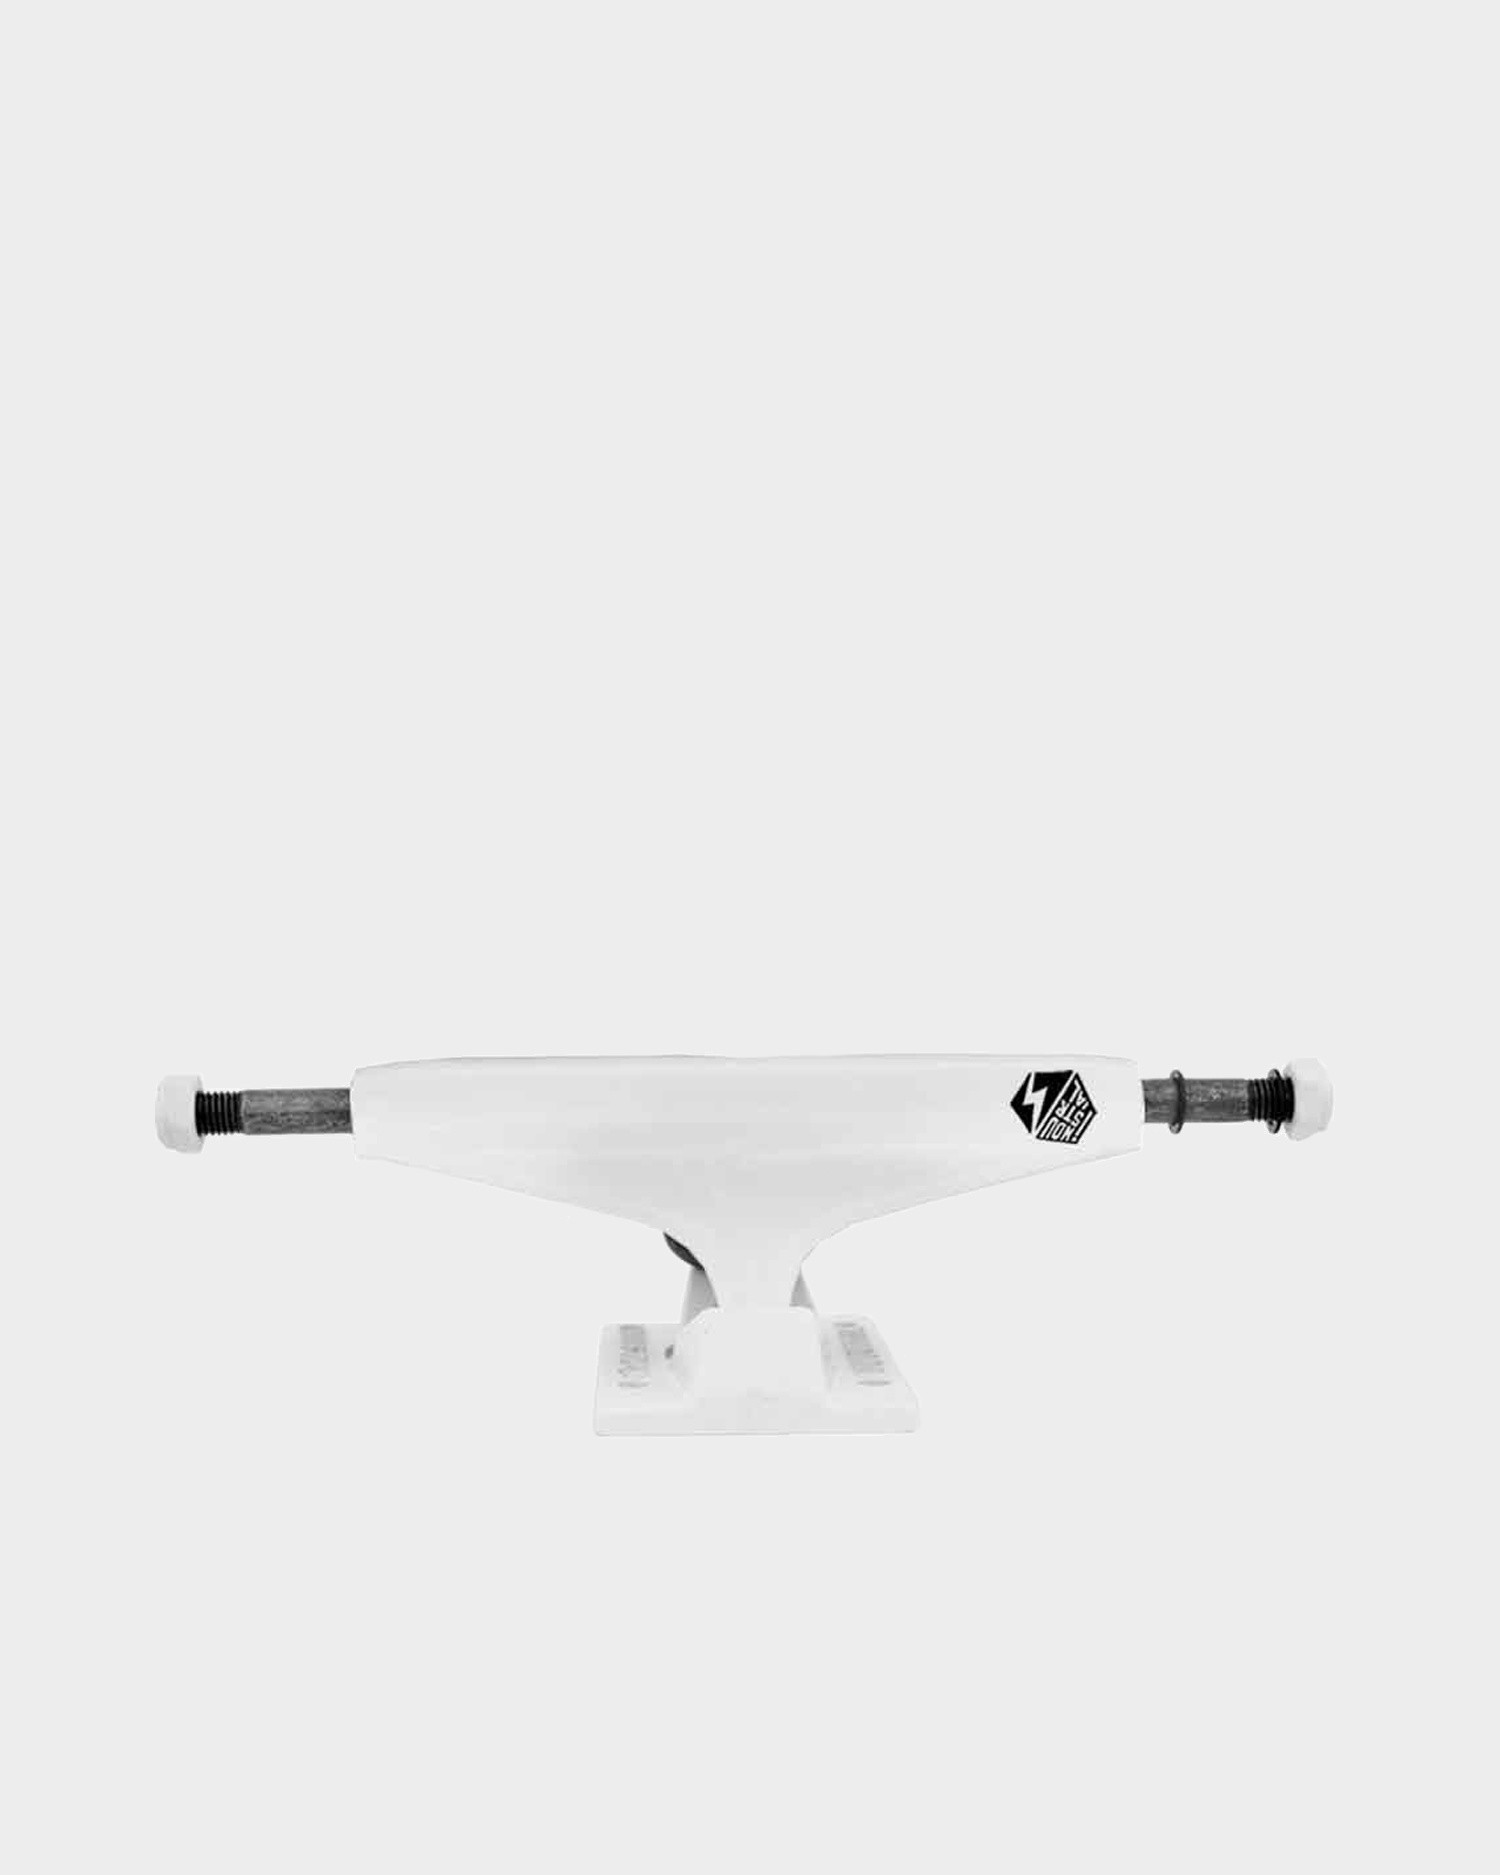 Copy of Industrial Truck 5.0 White/Black